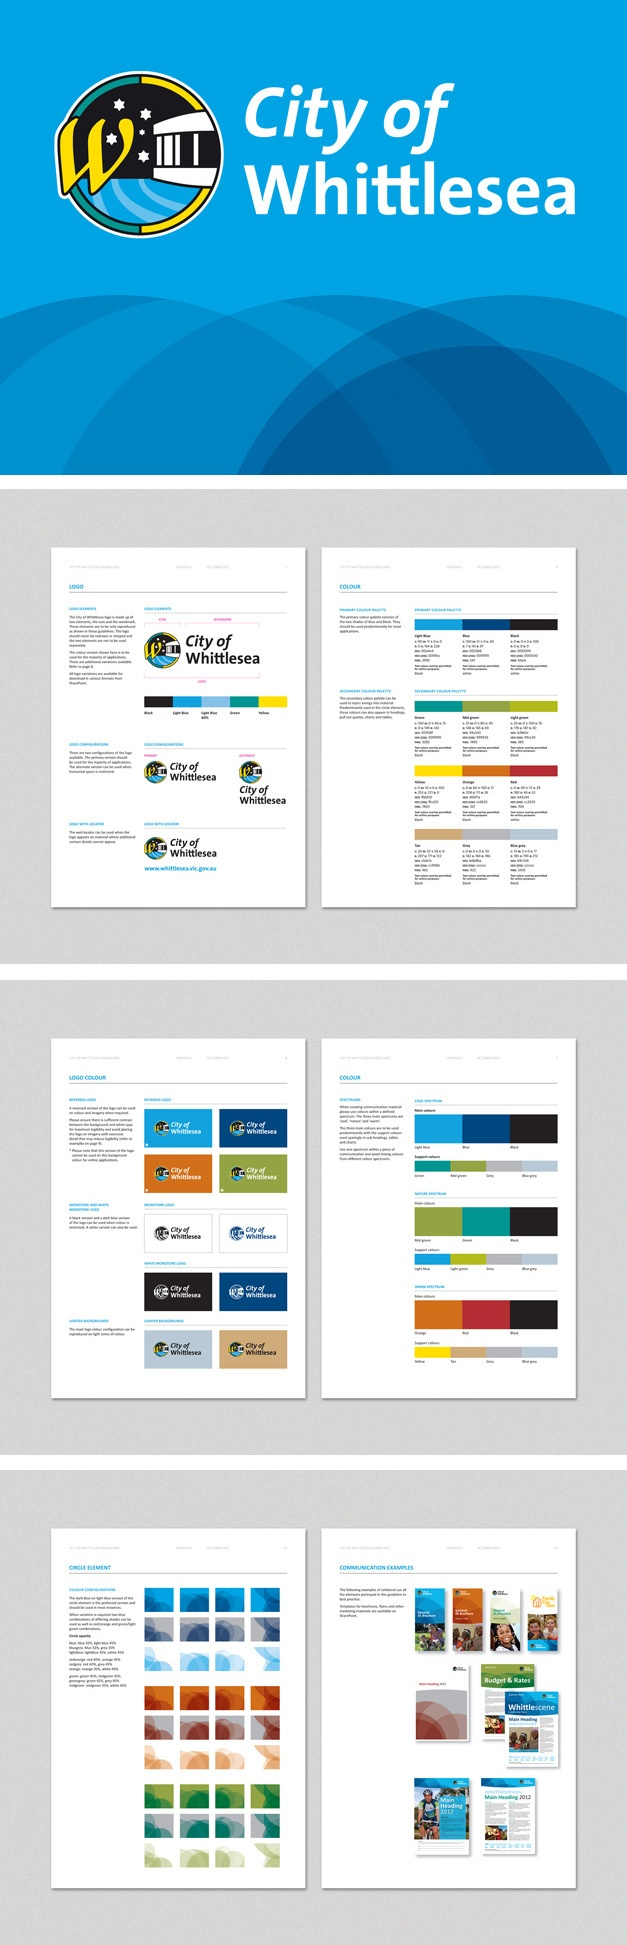 Brand extension (retaining existing logo) and templates for City of Whittlsea. www.fenton.com.au #communication #PR #branding #graphicdesign